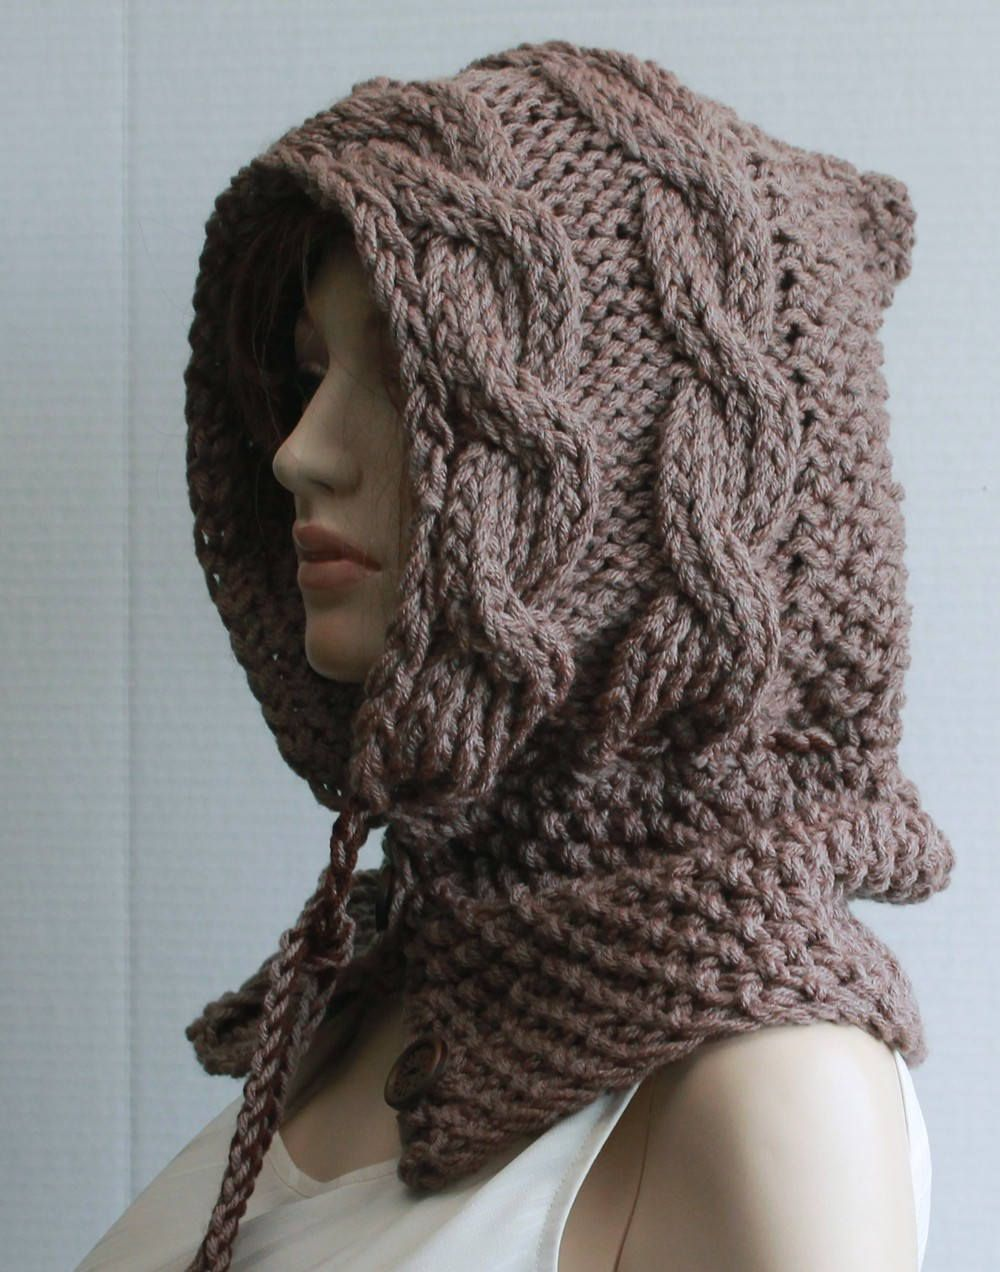 CHILD'S HOODED SCARF